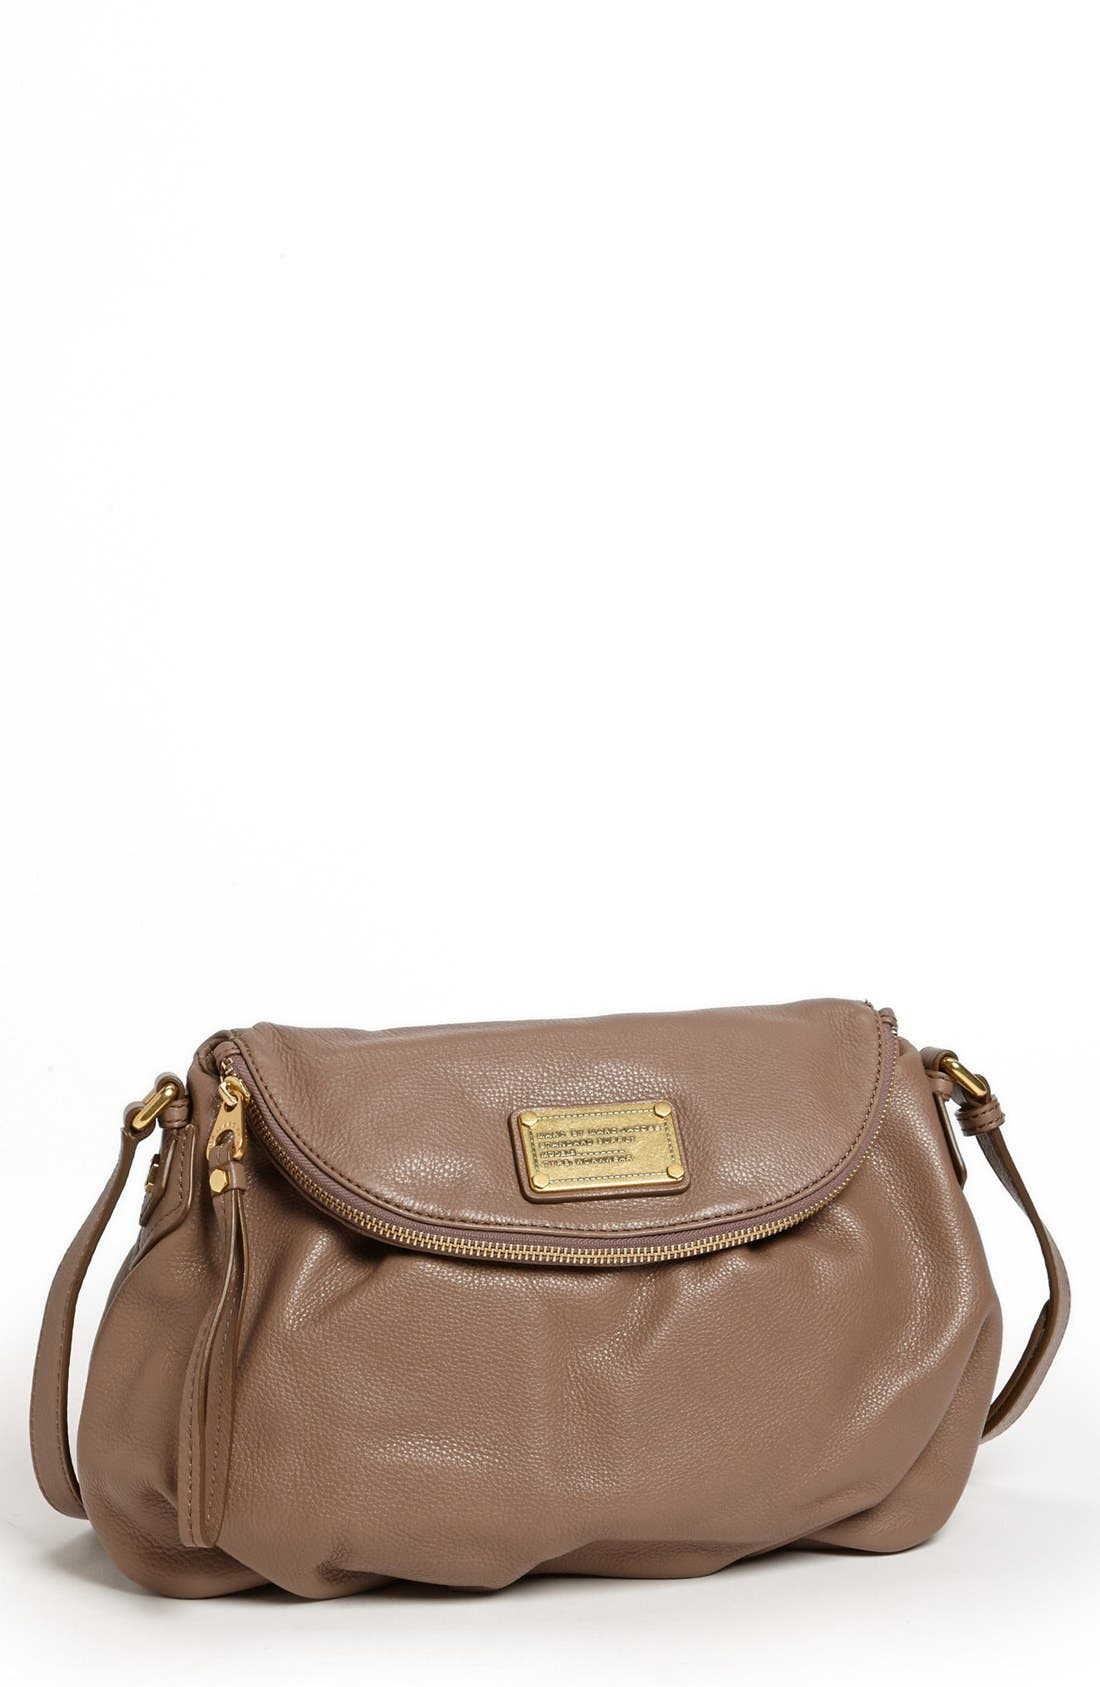 MARC BY MARC JACOBS 'Classic Q - Natasha' Crossbody Bag,                             Main thumbnail 6, color,